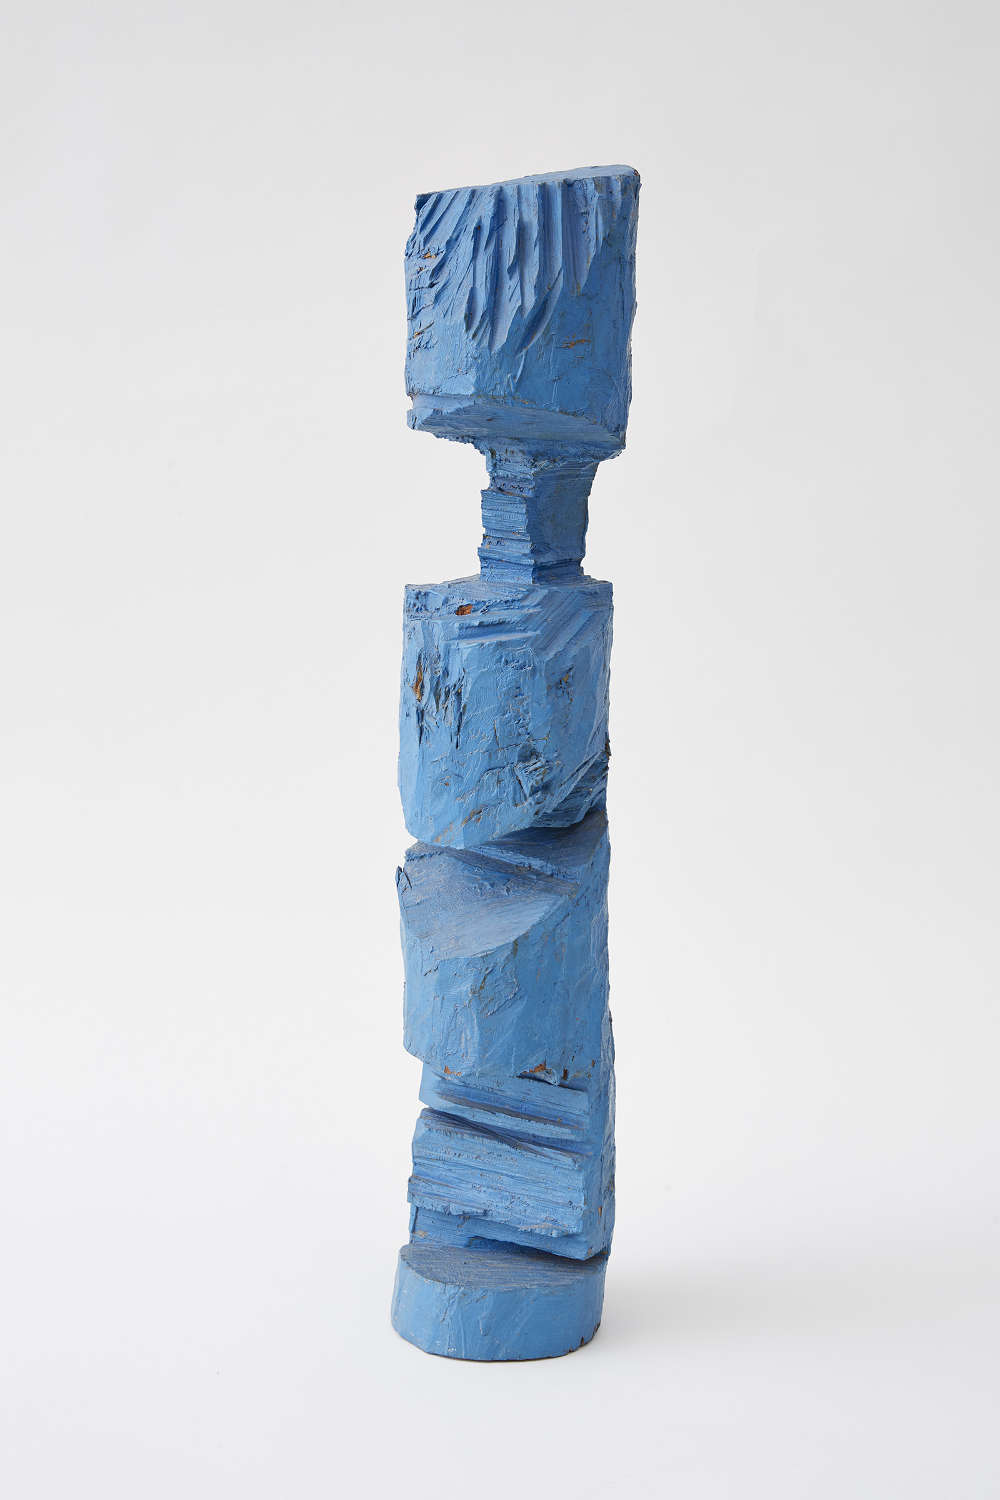 """A.R. Penck, """"Kleiner Totem (Little Totem)"""", 1986. Painted wood 30 x 6 1/4 x 6 1/2 inches 76 x 16 x 17 cm"""